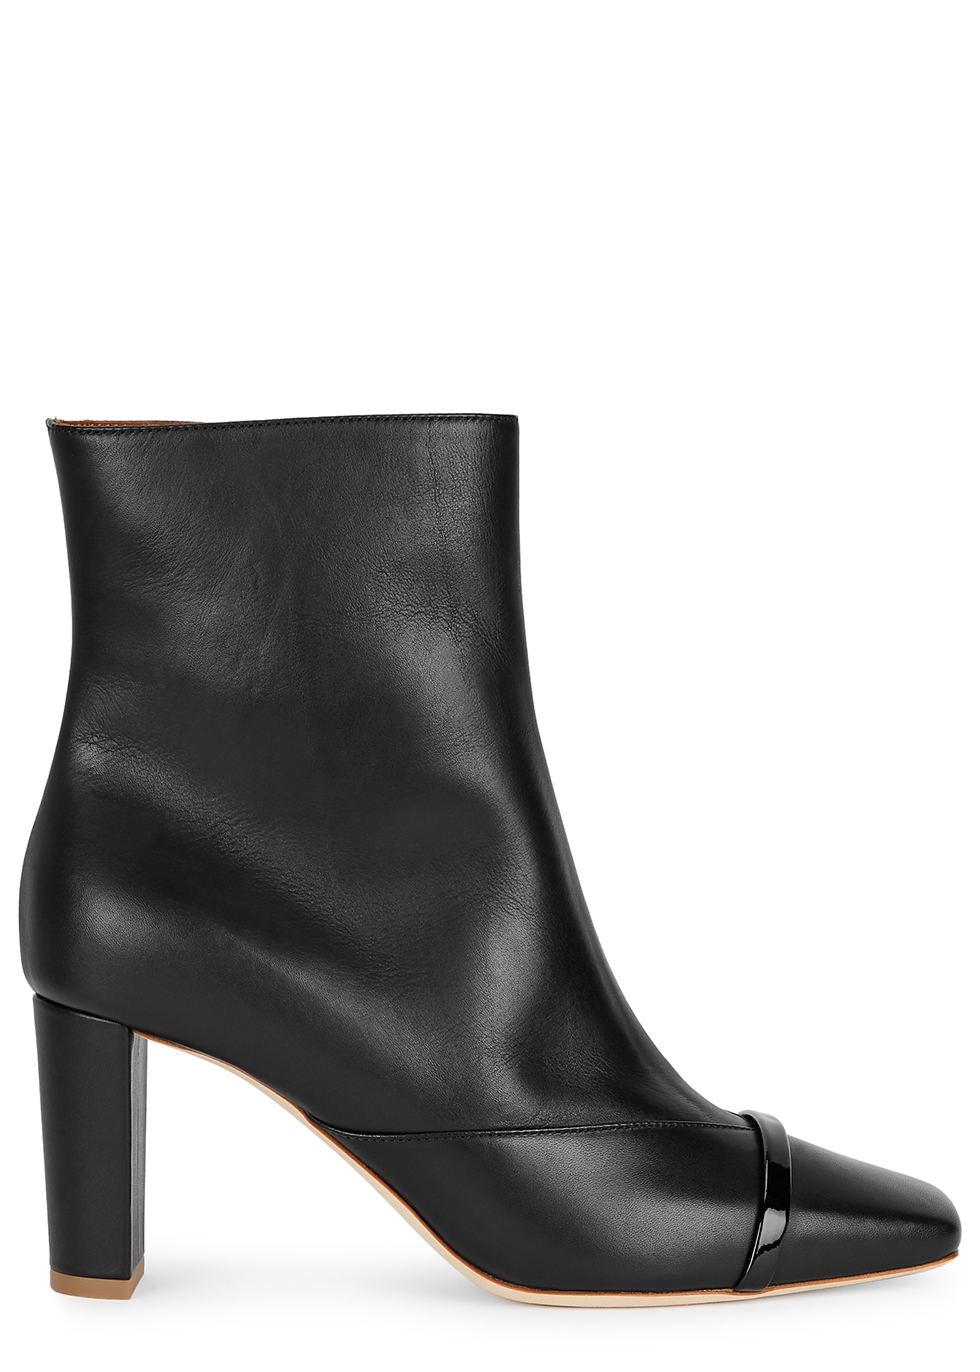 Lori 70 black leather ankle boots